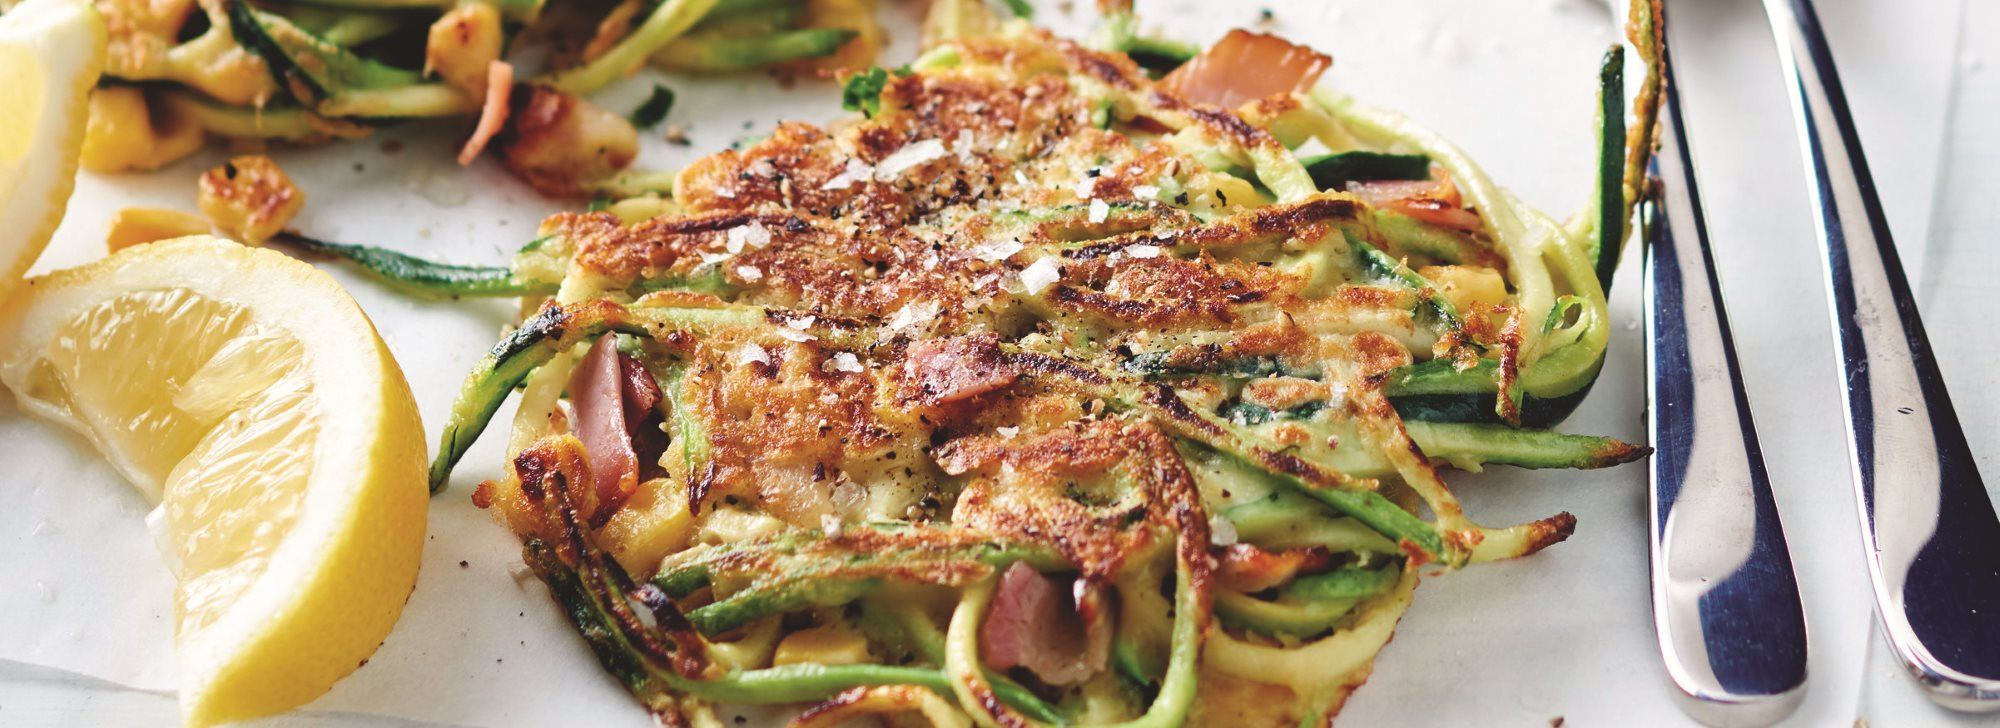 Pancetta and Vegetable Fritters Recipe